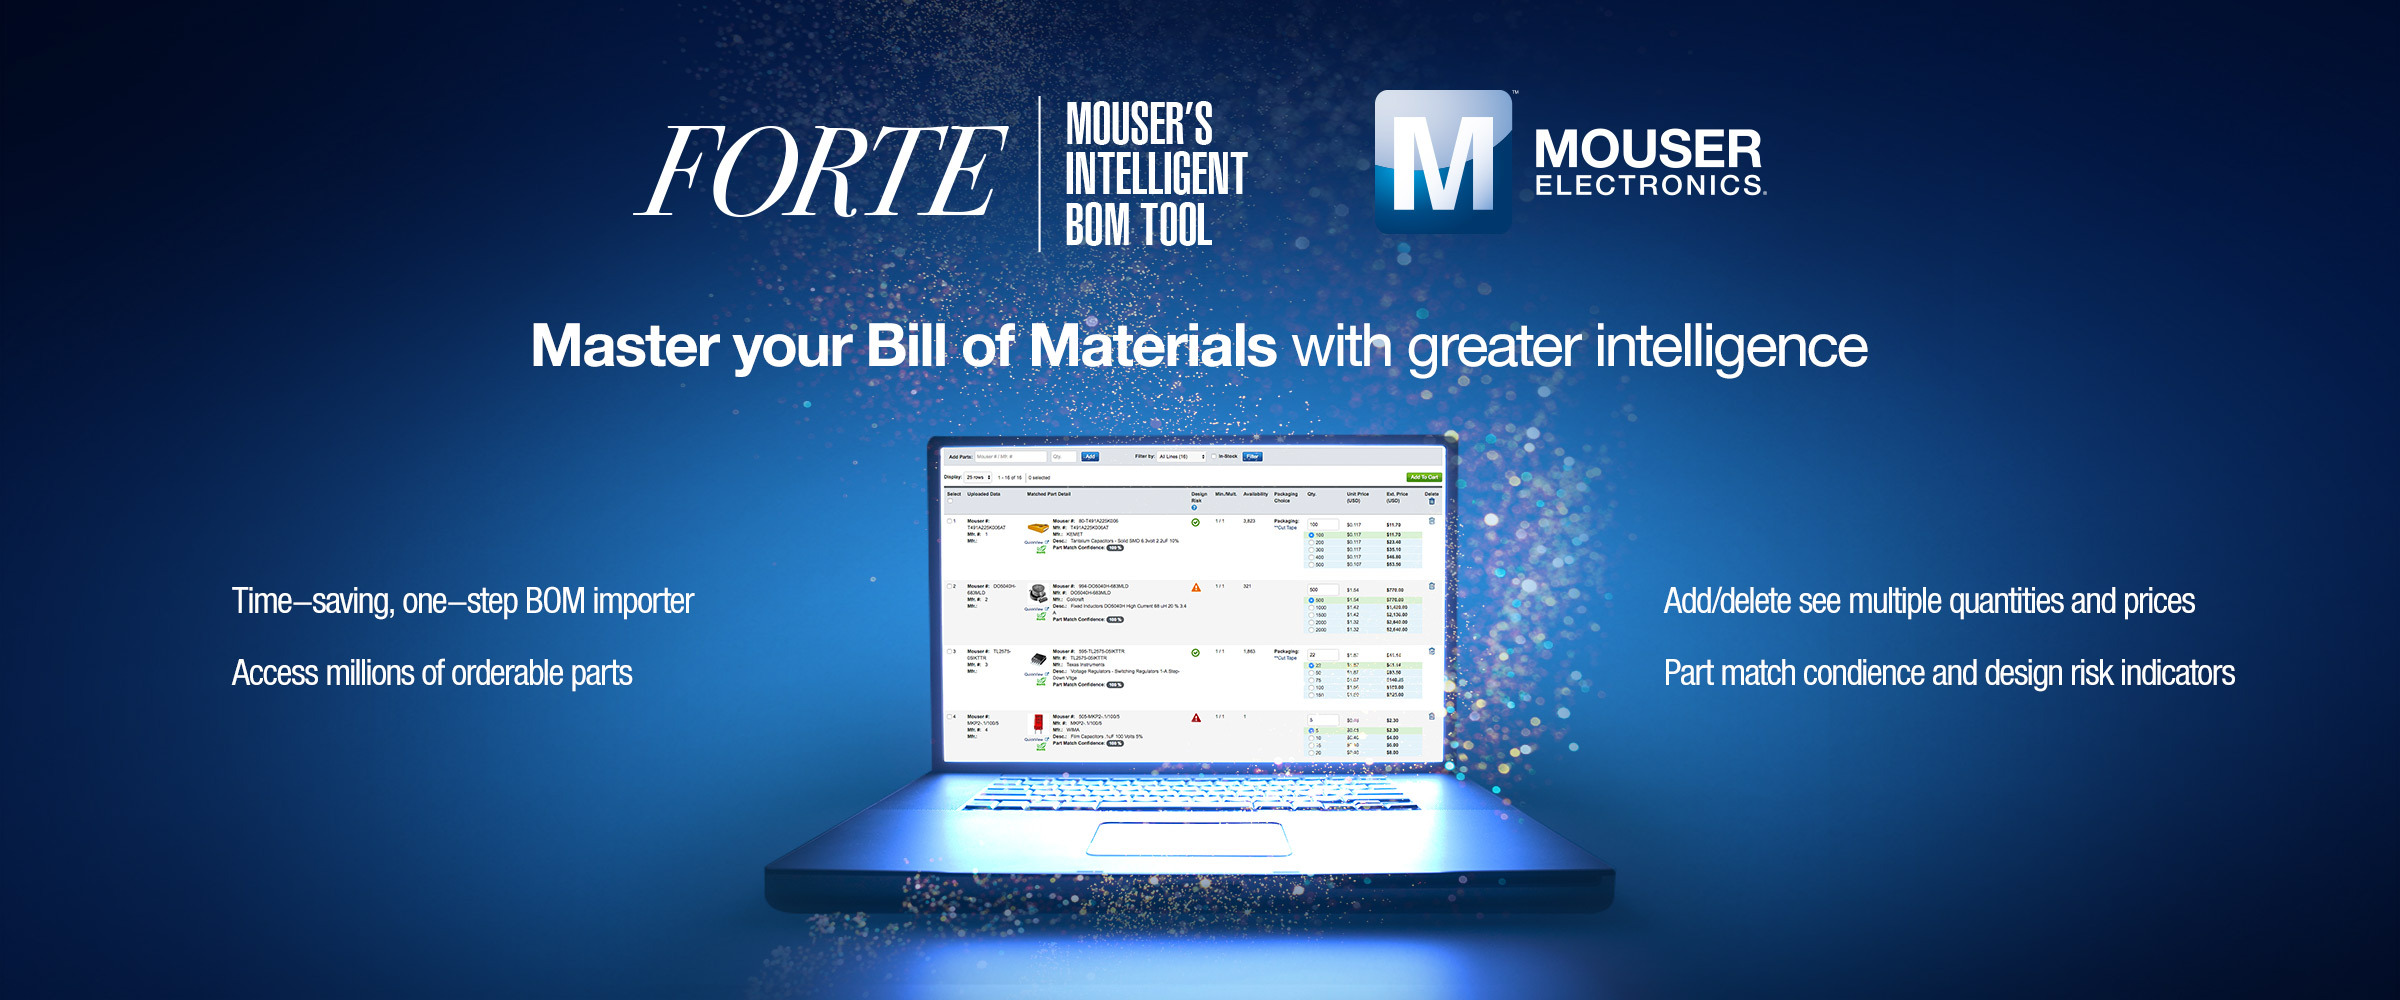 Mouser Electronics is pleased to announce FORTE — Mouser's intelligent BOM tool. FORTE is a comprehensive bill of materials (BOM) management tool designed to increase confidence, save time, and improve order accuracy in specifying and purchasing electronic components. (Photo: Business Wire)